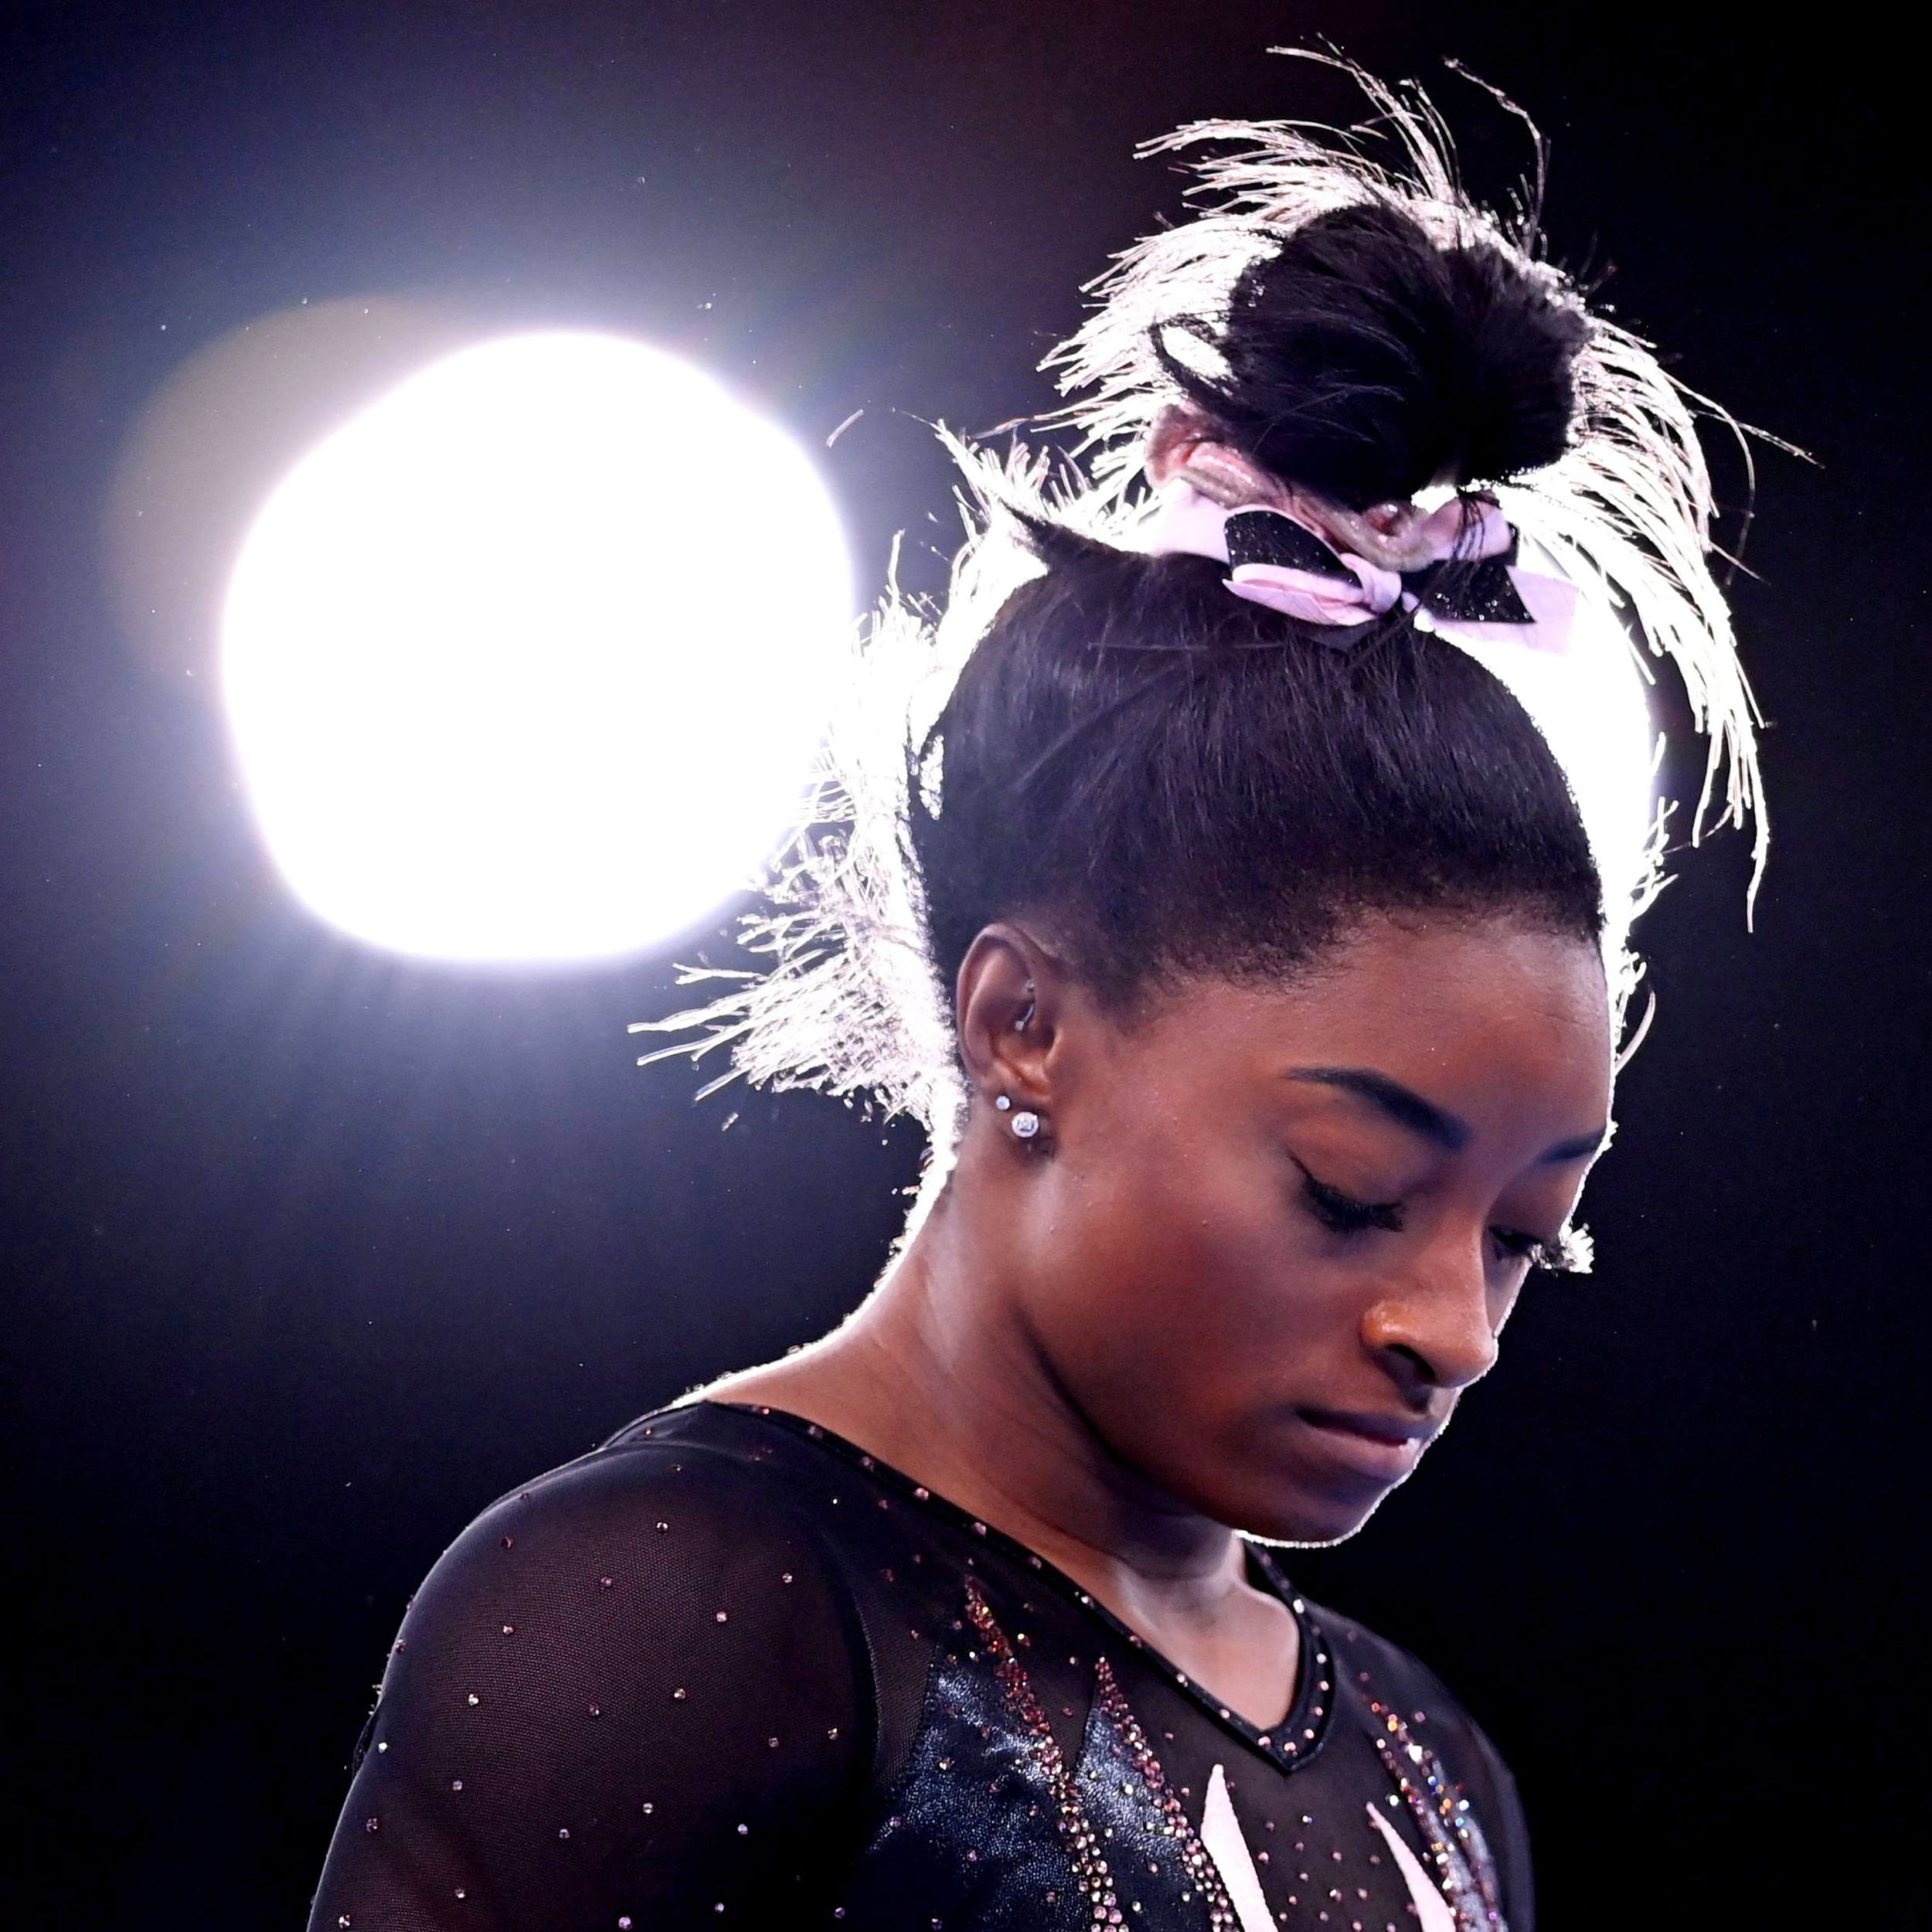 If I'd acted like Simone Biles, I would be happier and healthier